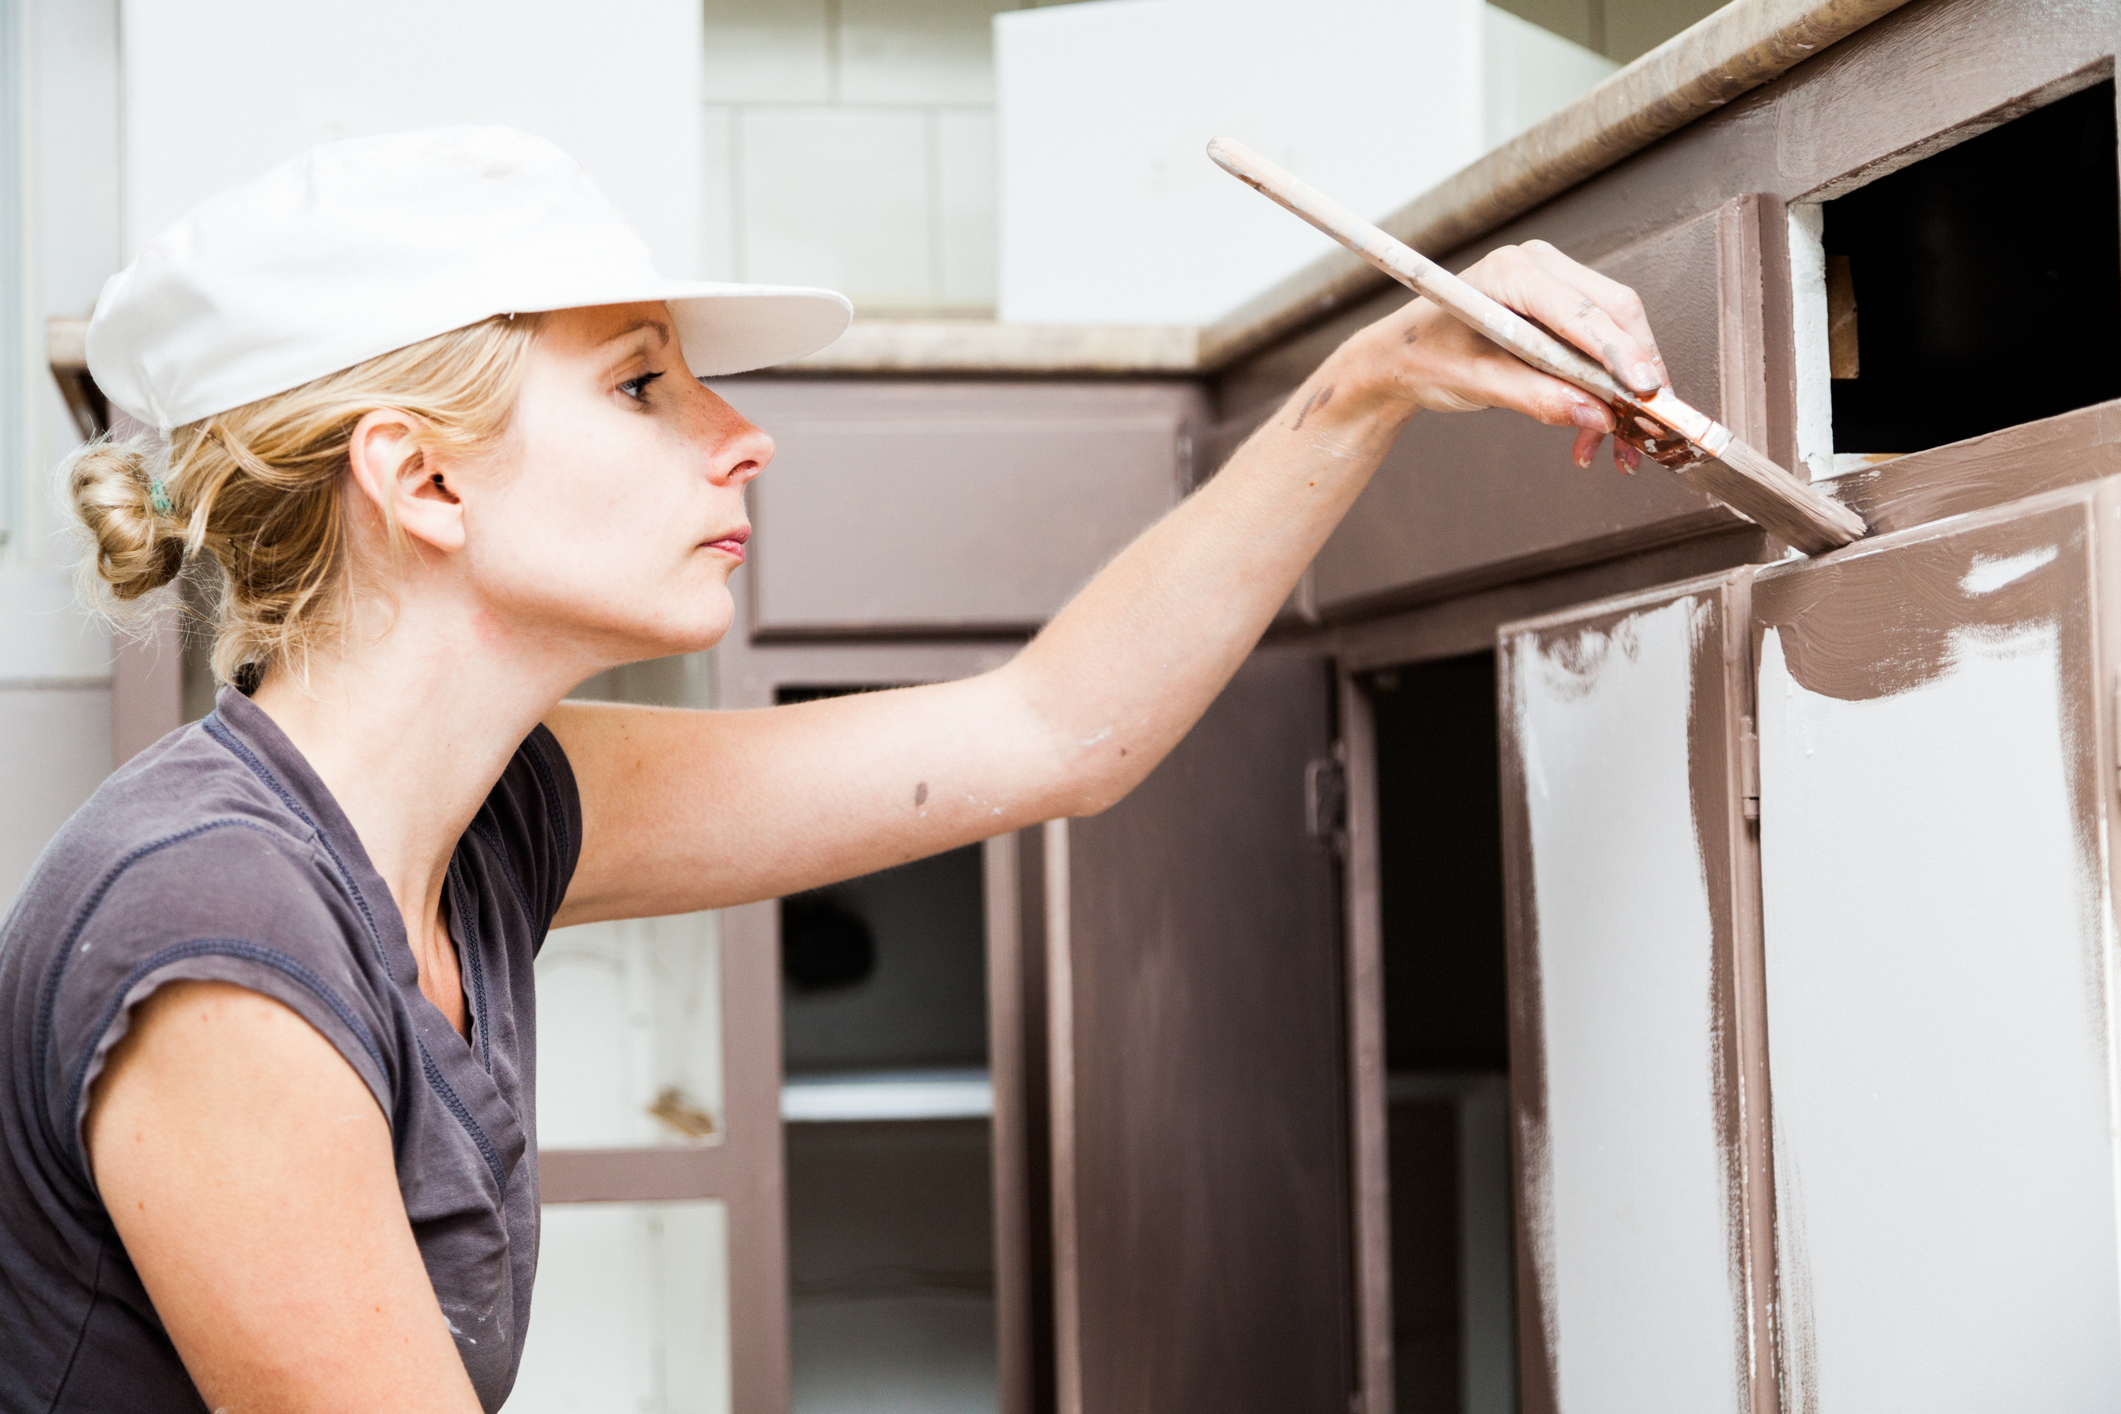 Closeup of Woman Painting Kitchen Cabinets